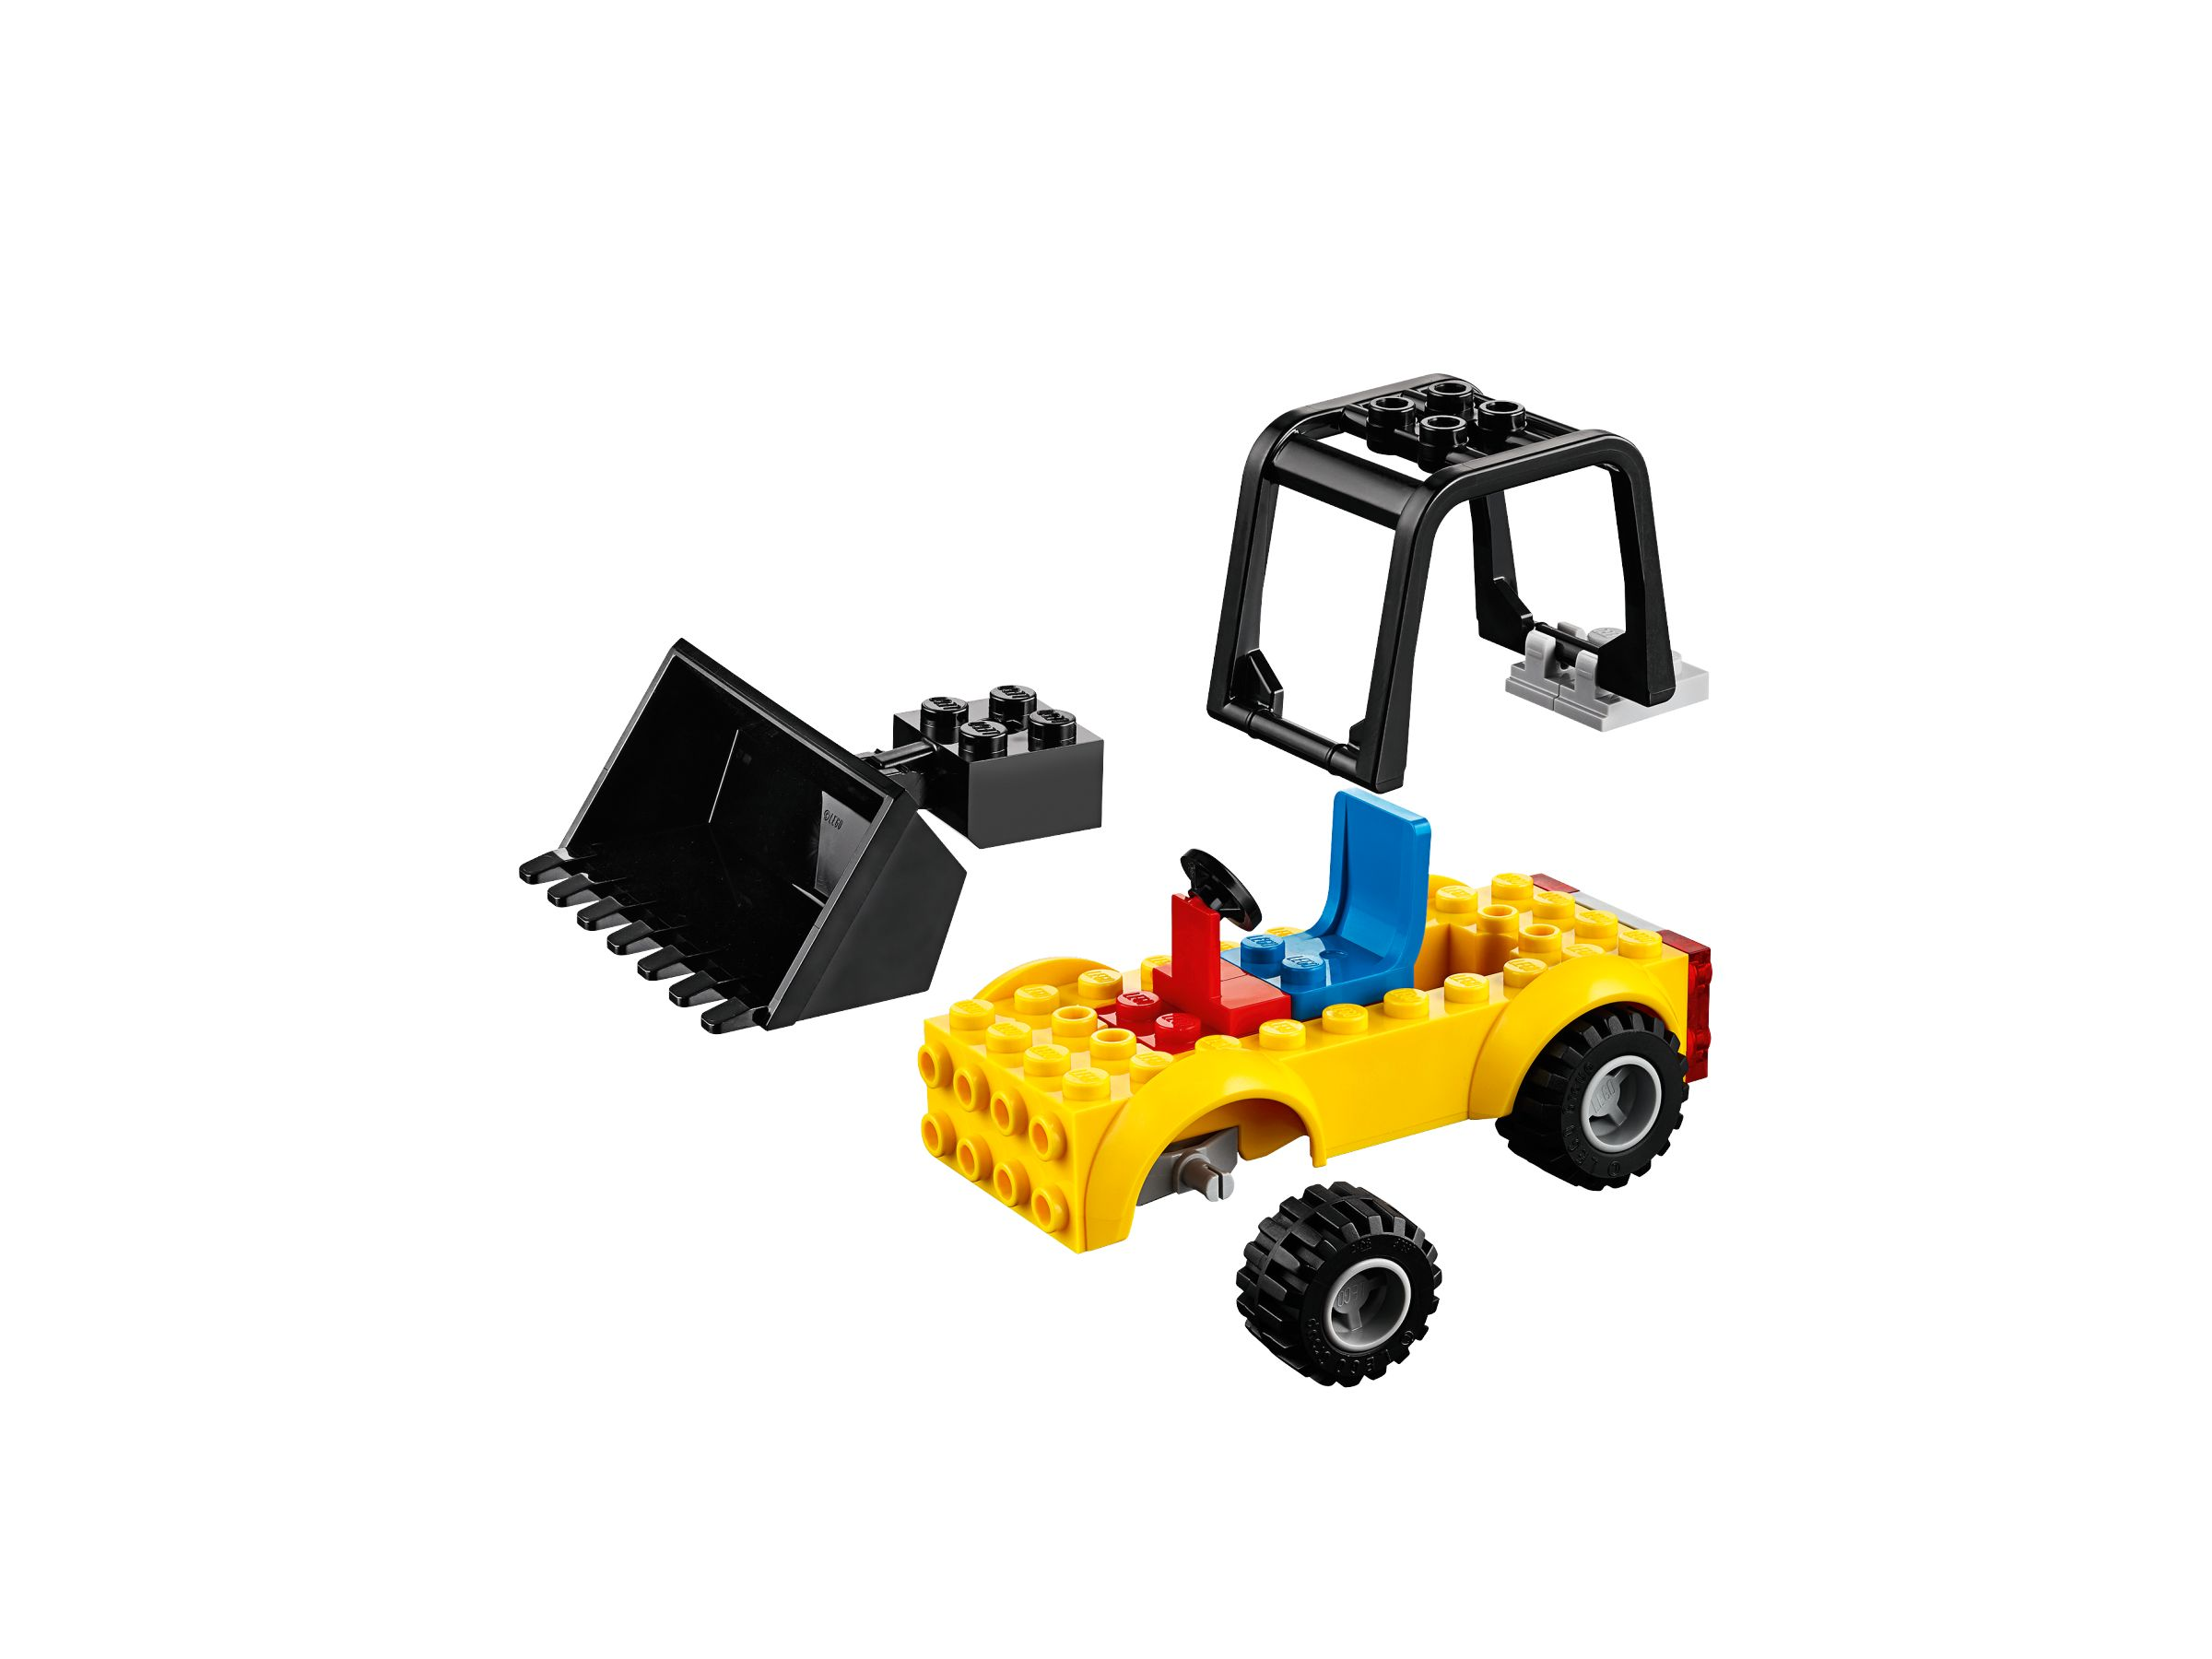 LEGO The LEGO Movie 2 70832 Emmets Baukoffer! LEGO_70832_alt7.jpg